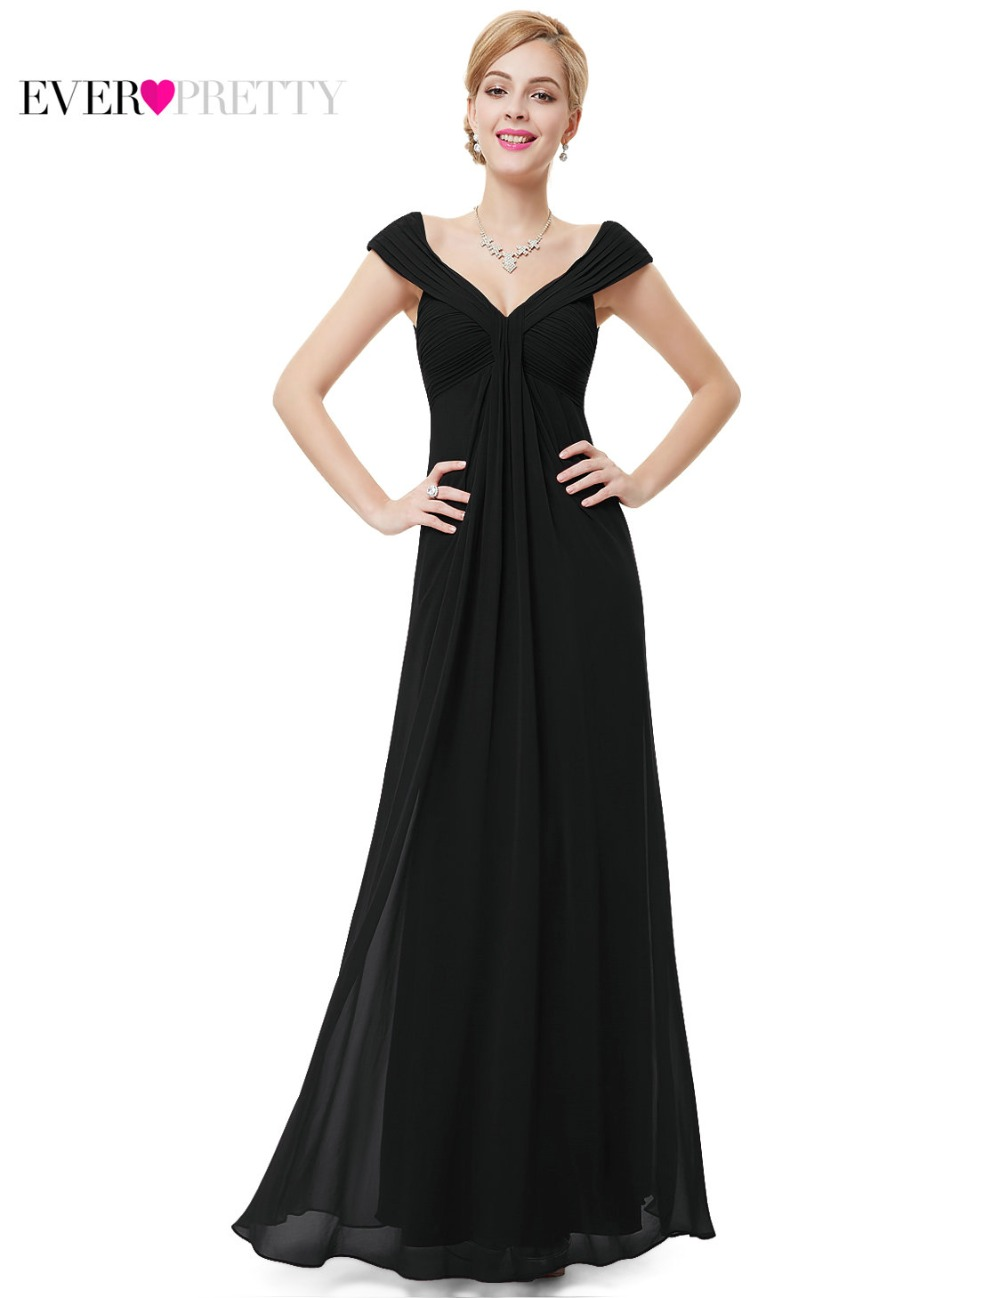 womens dresses for weddings clearance evening dresses pretty he08457 1465